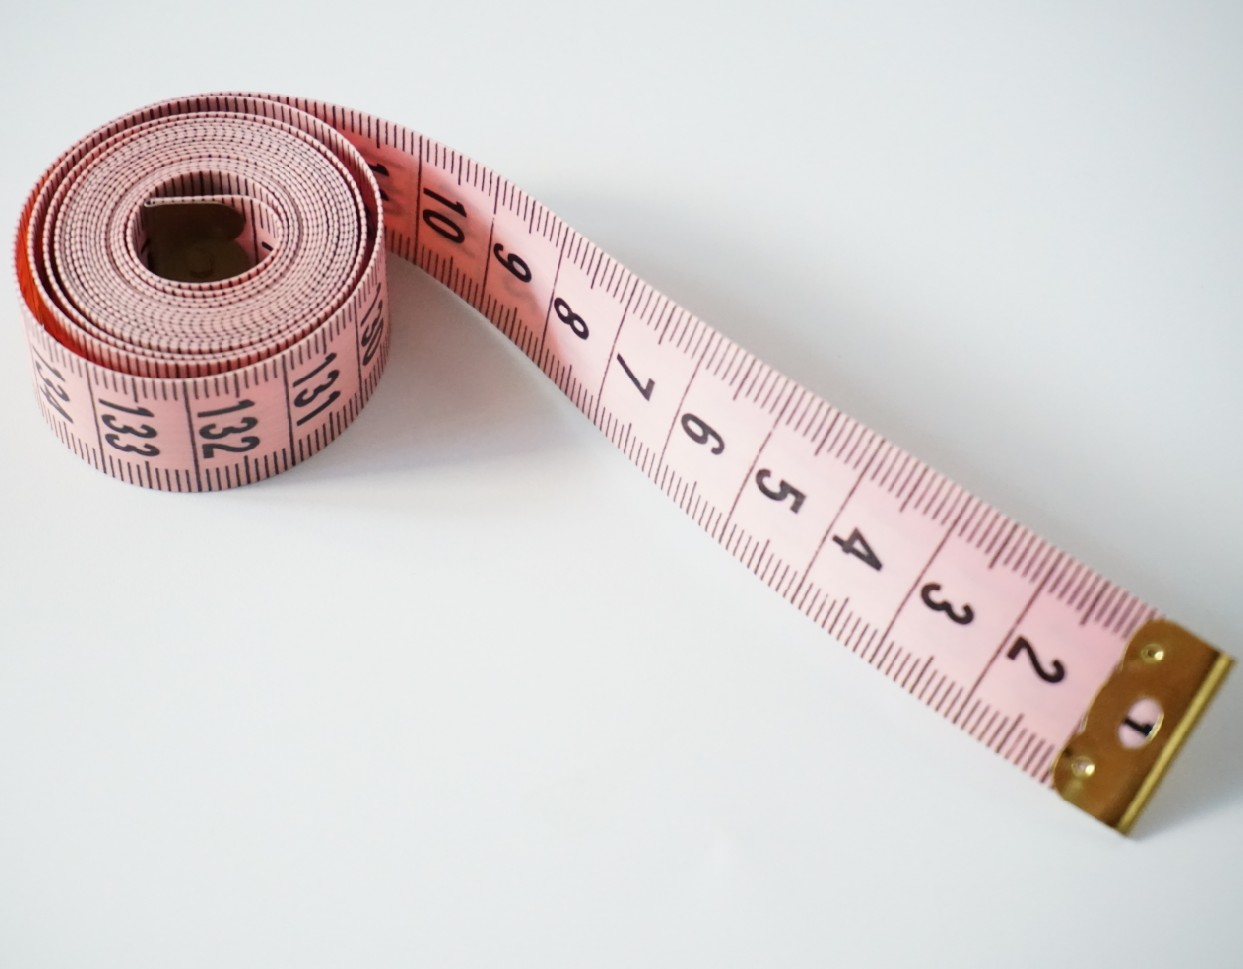 Measuring Tape 150cm / 60 inch Waterproof Sewing Body Tape Measure With Custom Logo